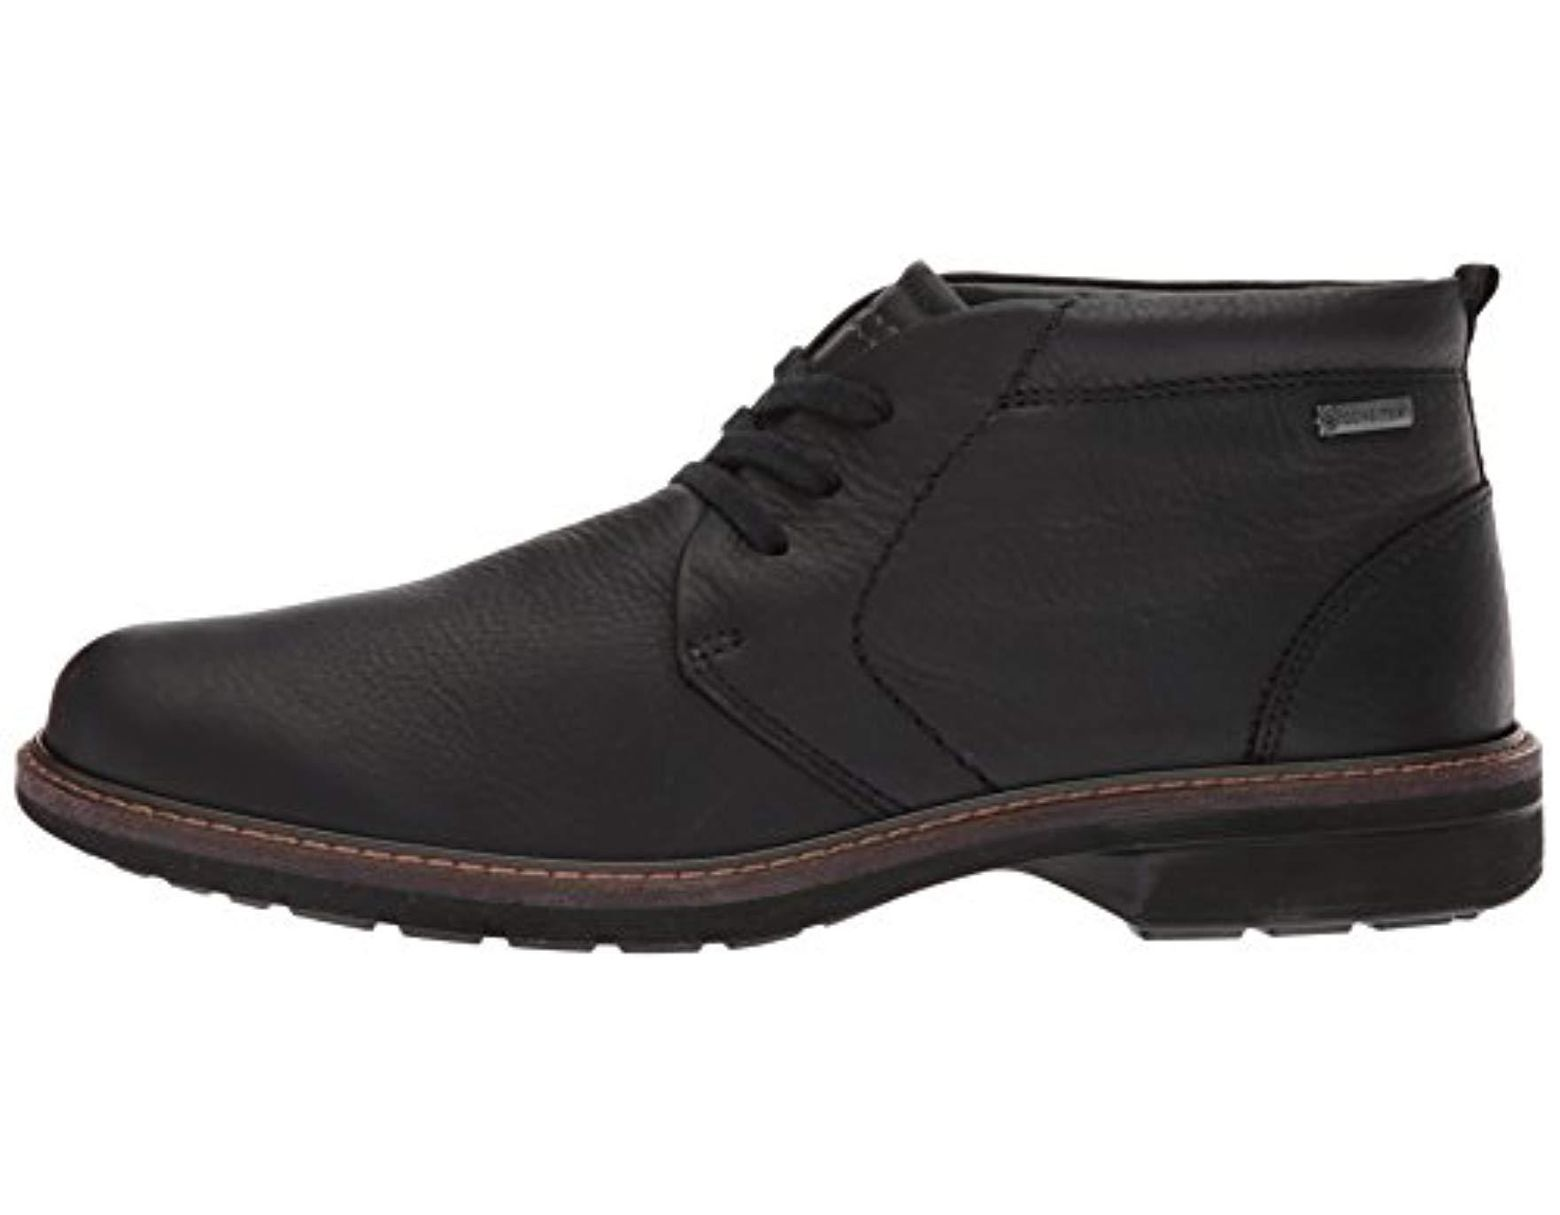 4dc2aed2b4d3b Ecco Turn Gore-tex Tie Chukka Boot in Black for Men - Save 21% - Lyst